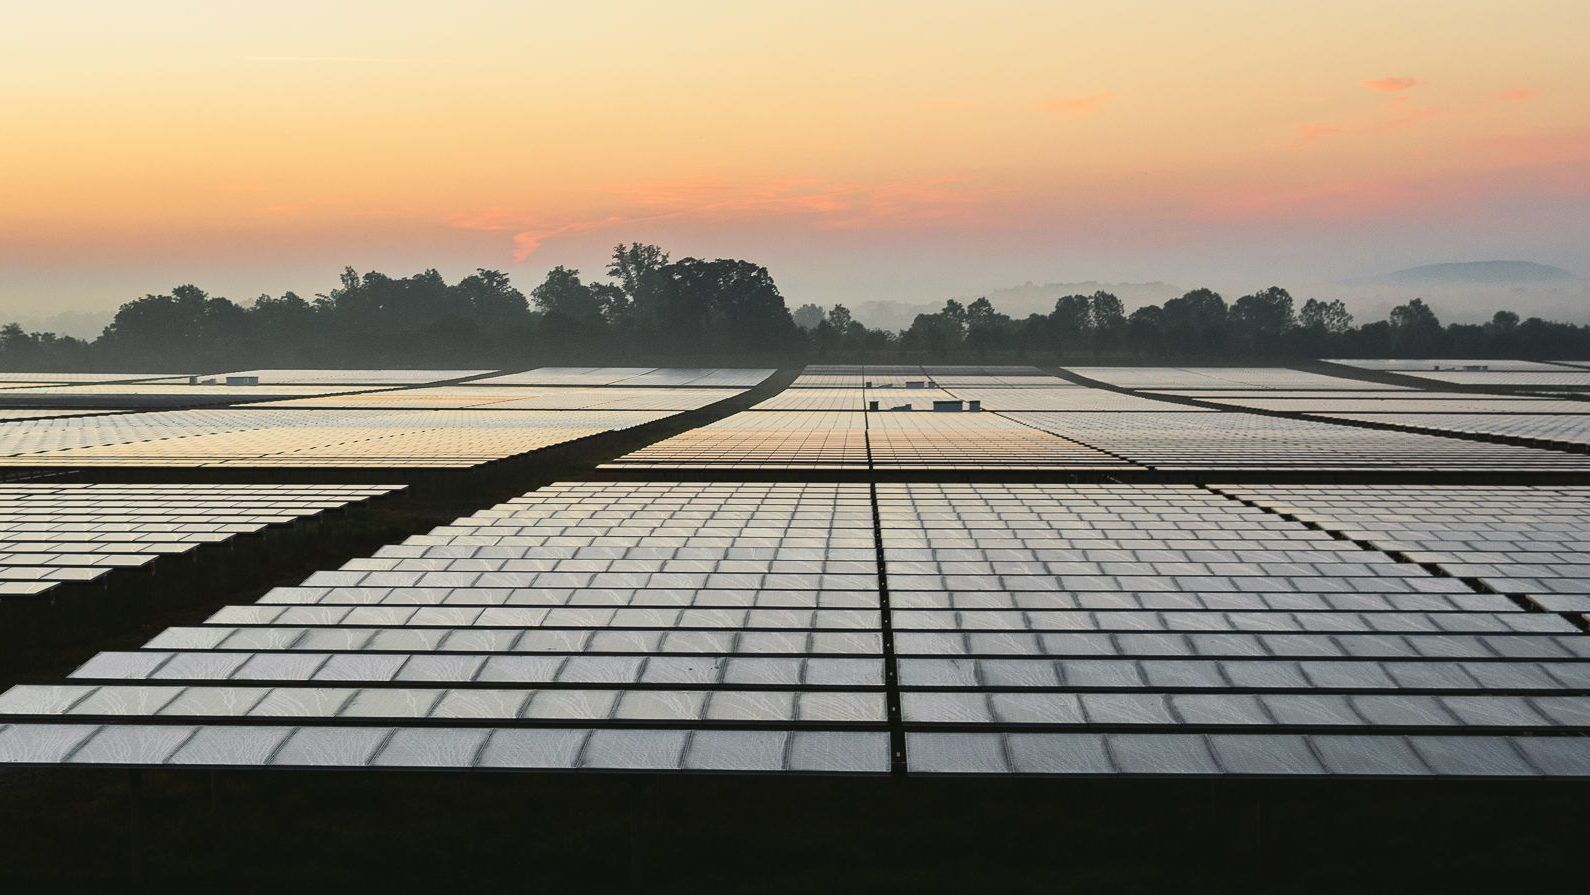 You no longer need to own a solar panel to reap the